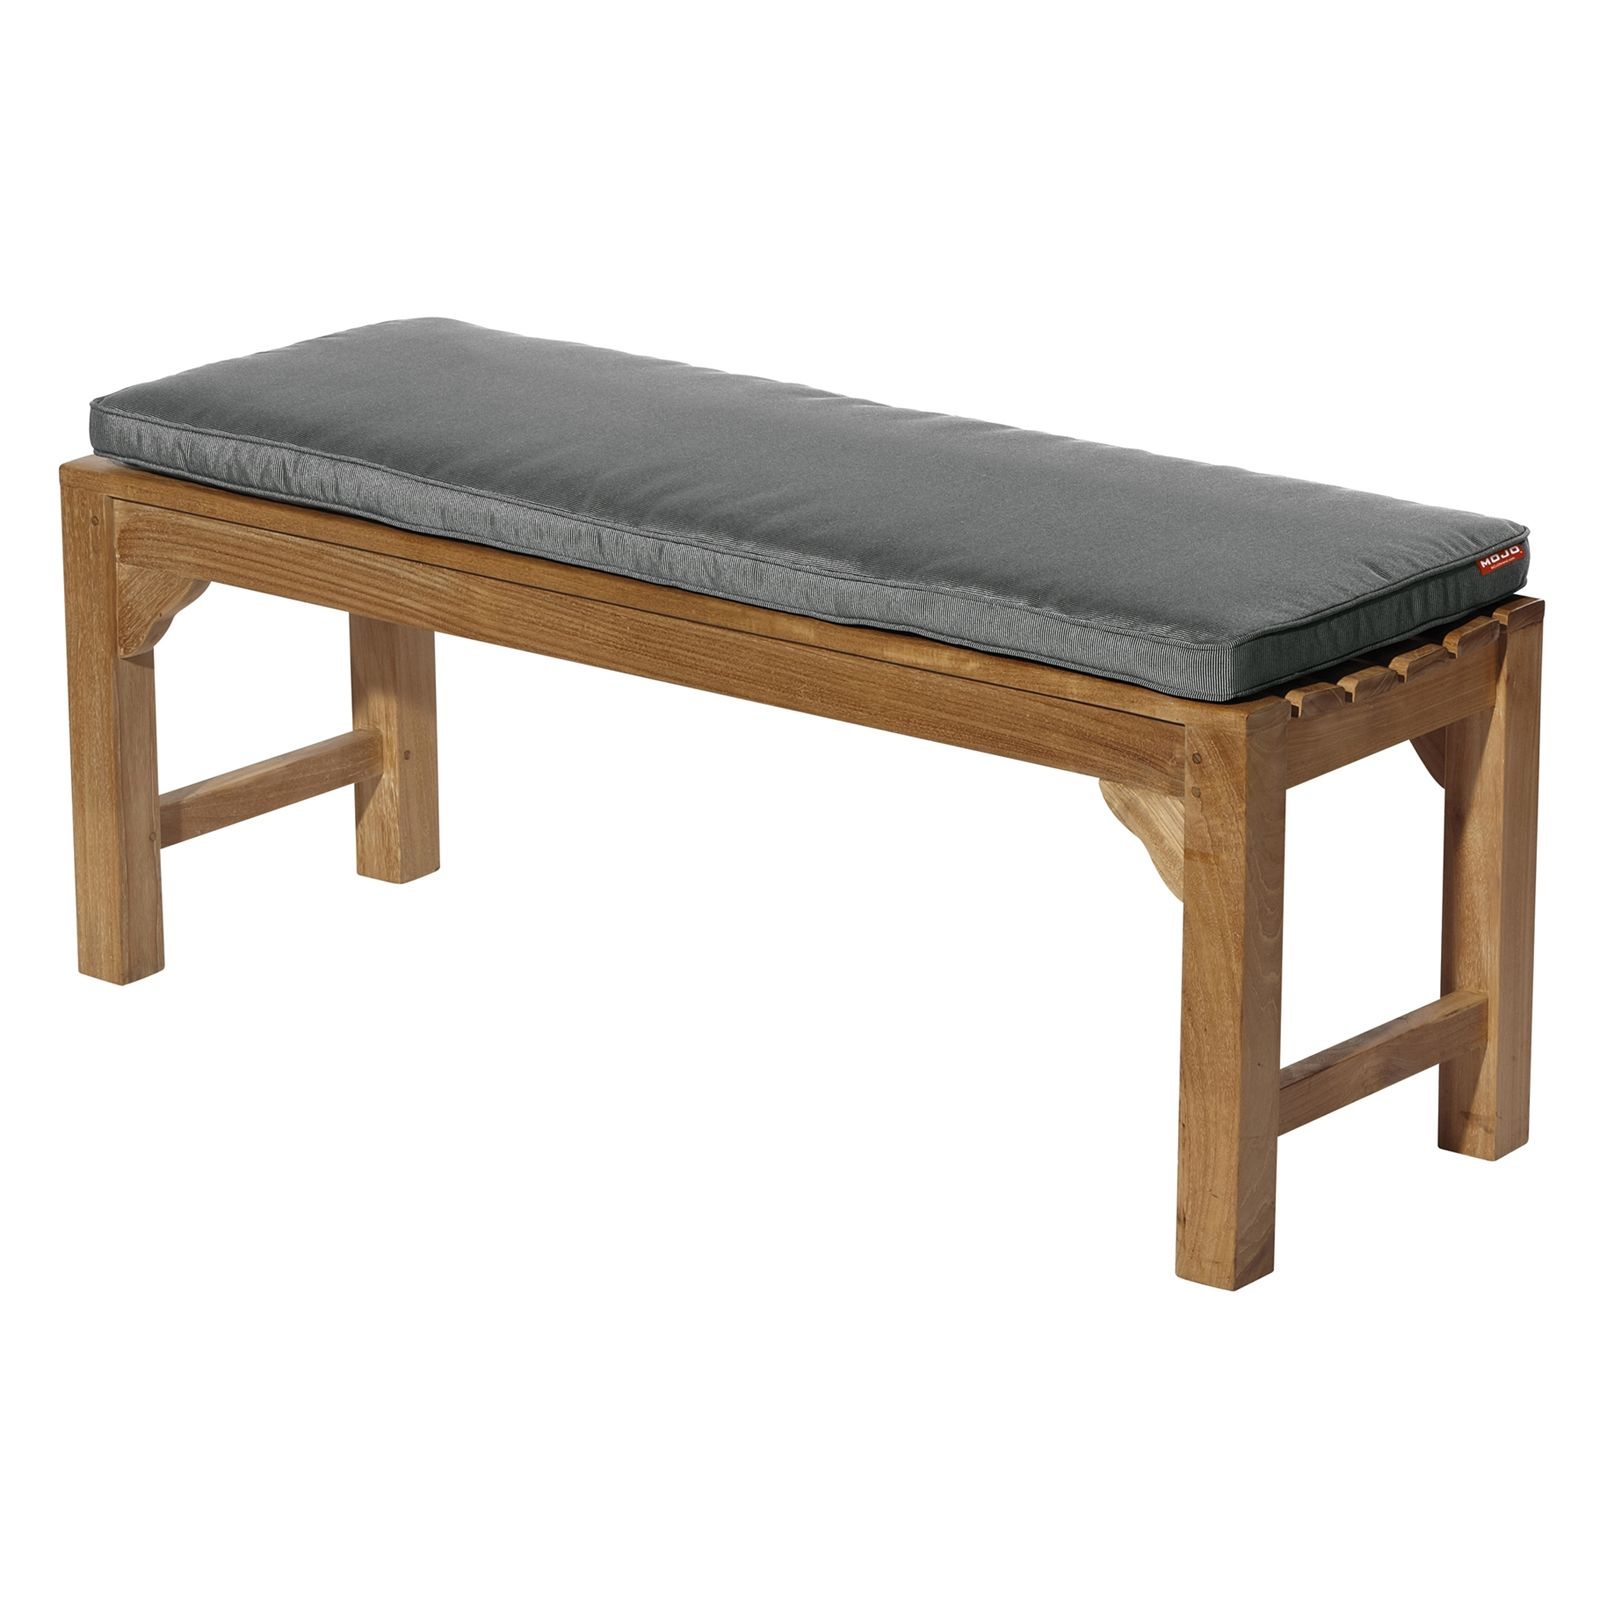 mojo 116 x 48cm grey outdoor bench cushion bunnings warehouse - Outdoor Bench Cushion